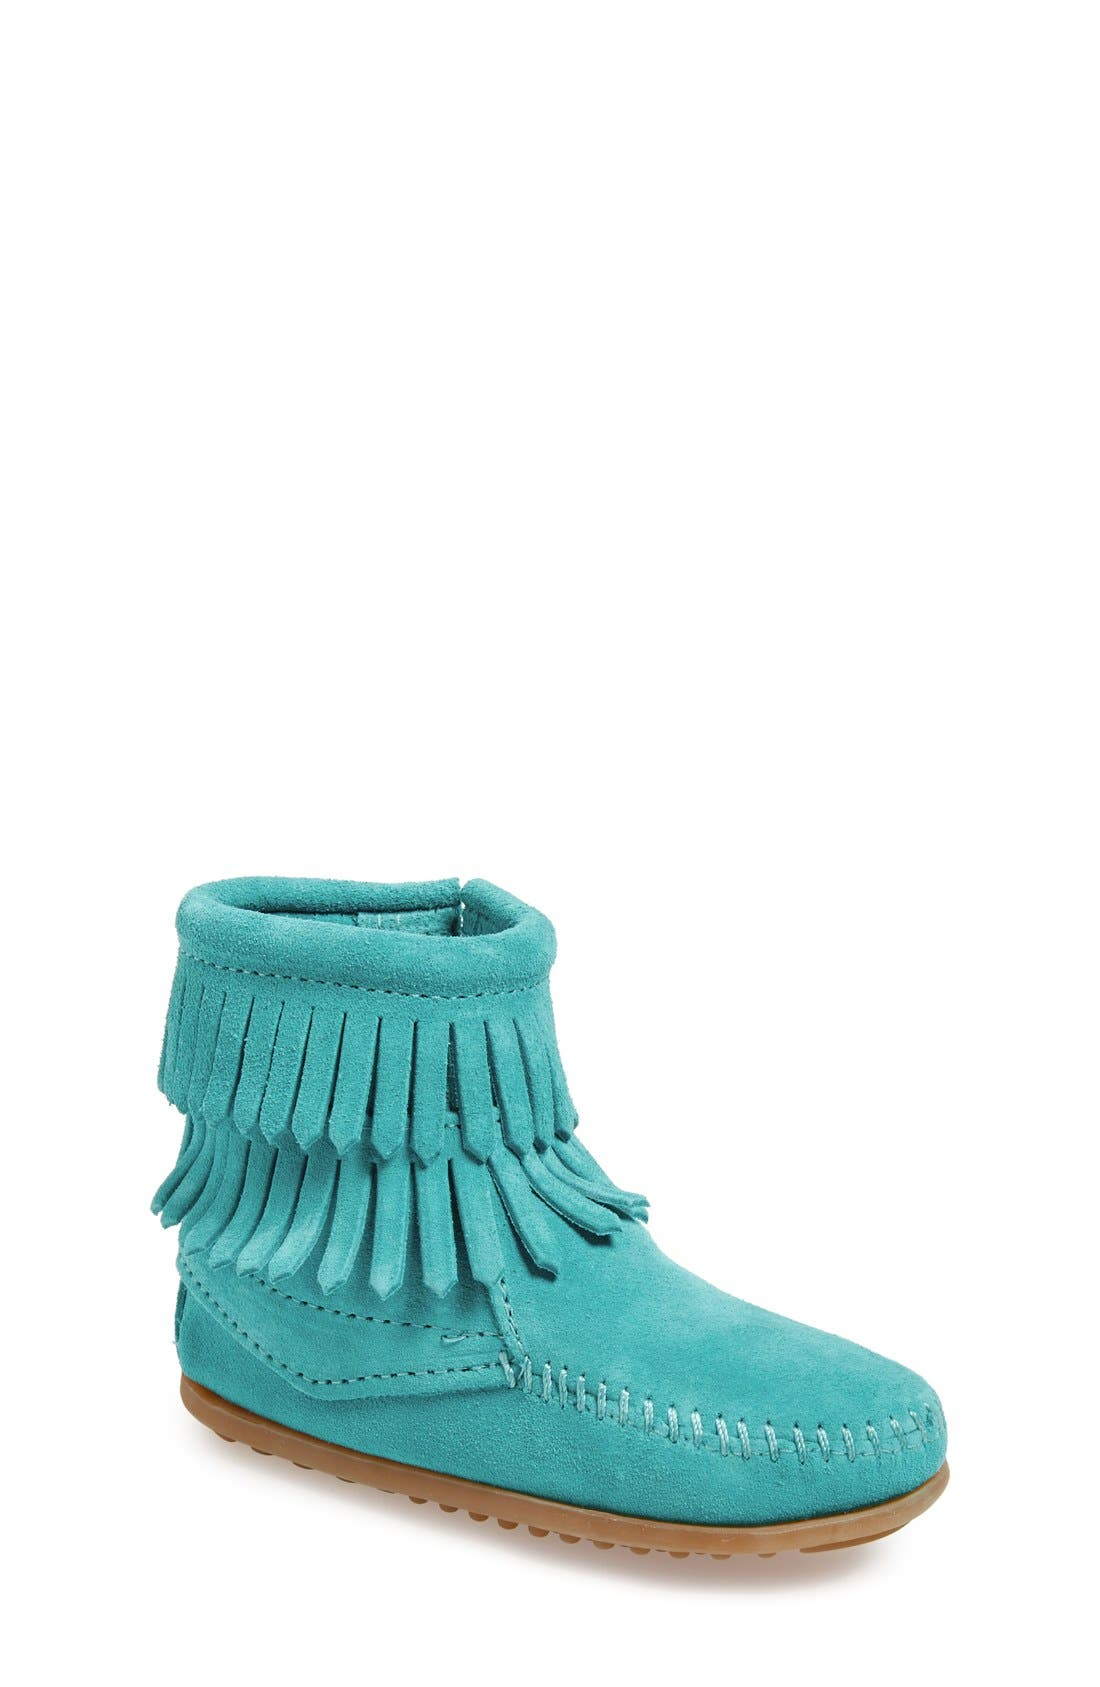 'Double Fringe' Boot,                             Main thumbnail 1, color,                             TURQUOISE